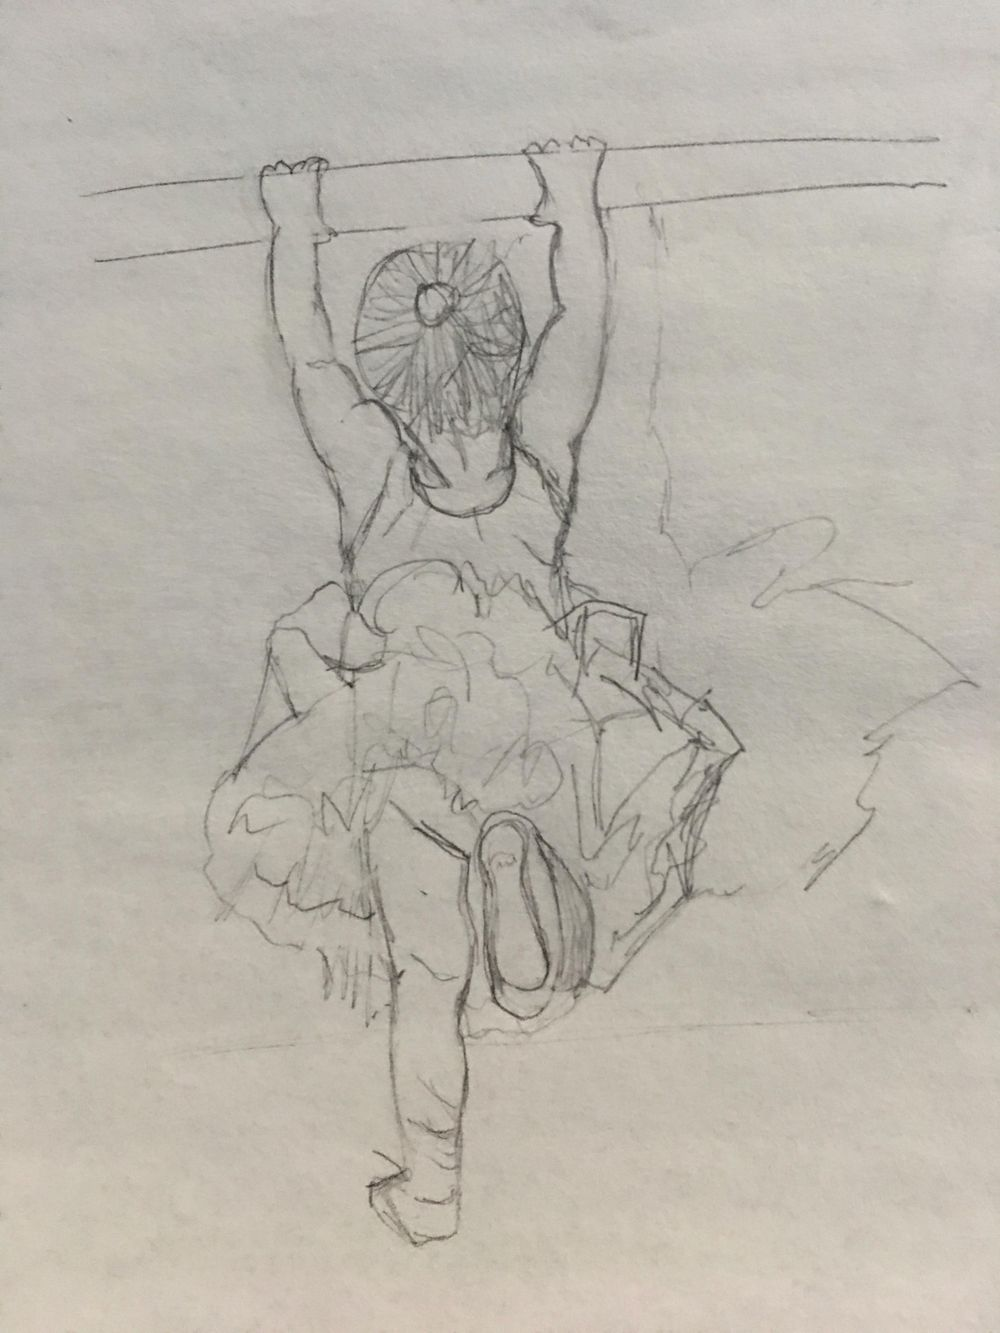 Drawing what I love and how do I come up with something original? - image 2 - student project